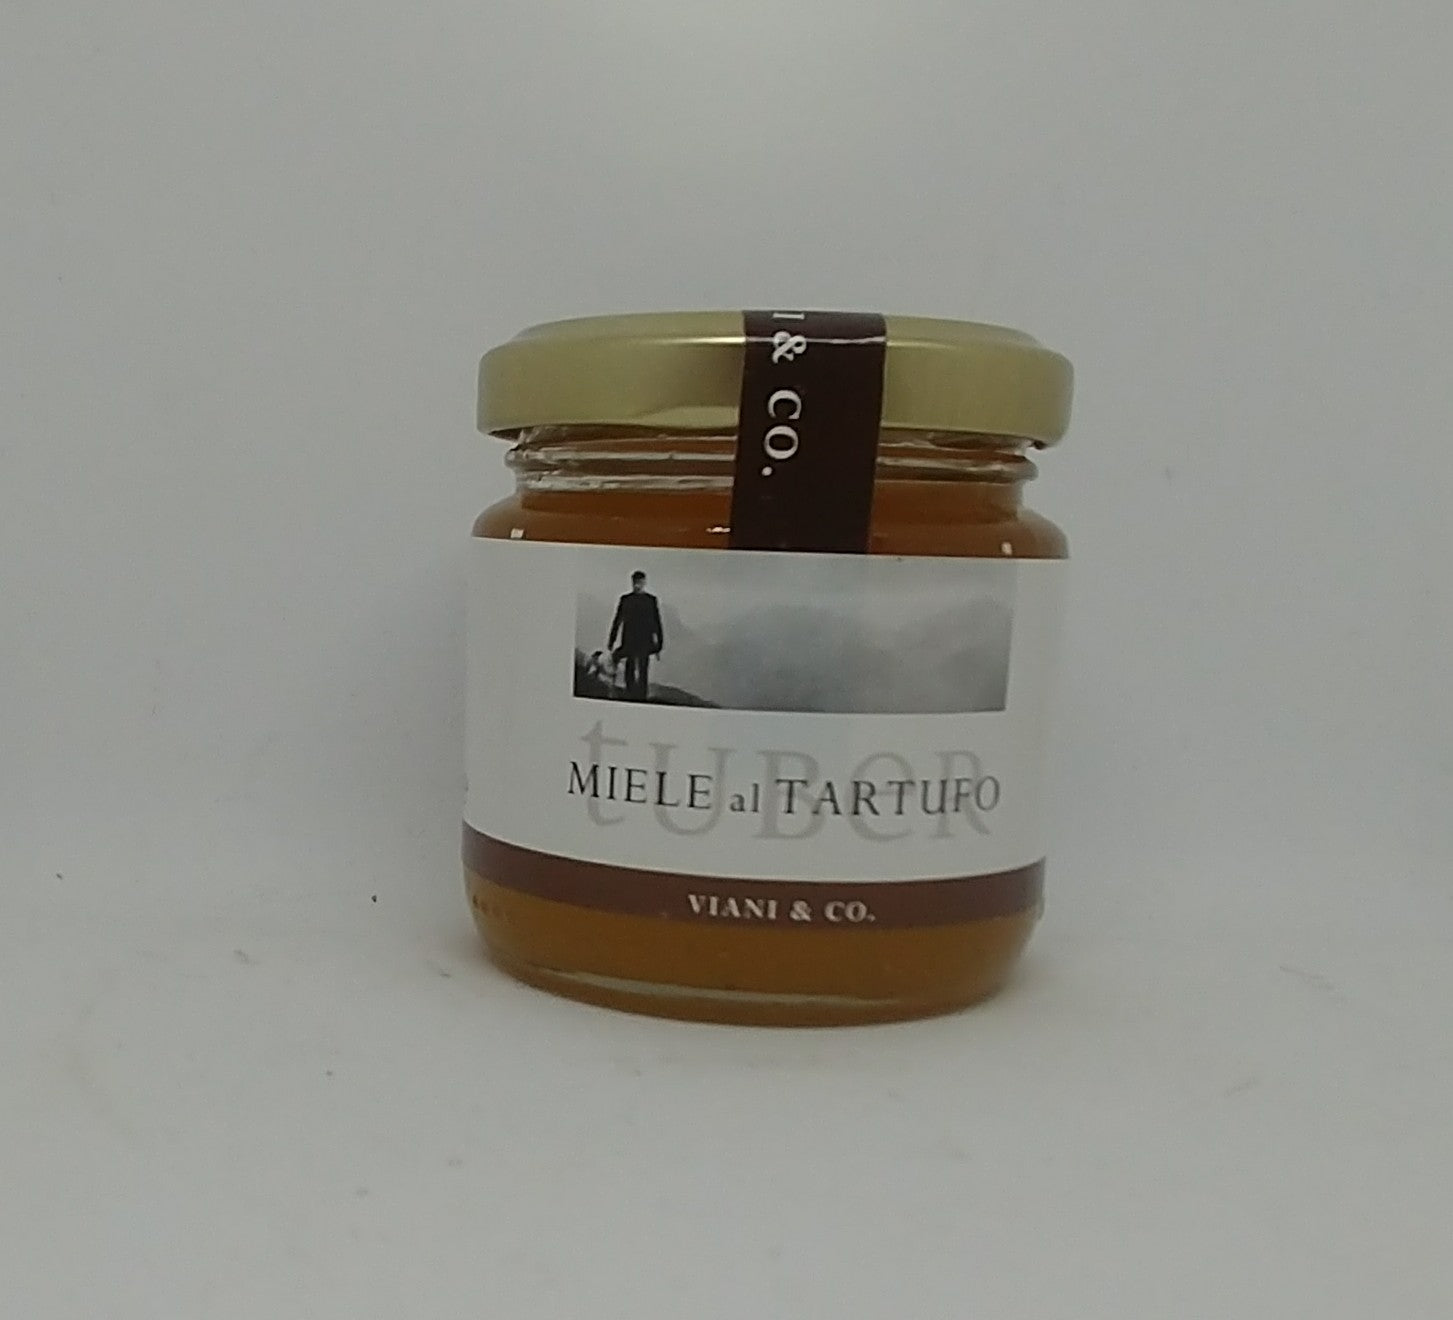 Viani & Co. Acacia Honey with Truffle Aroma 120g